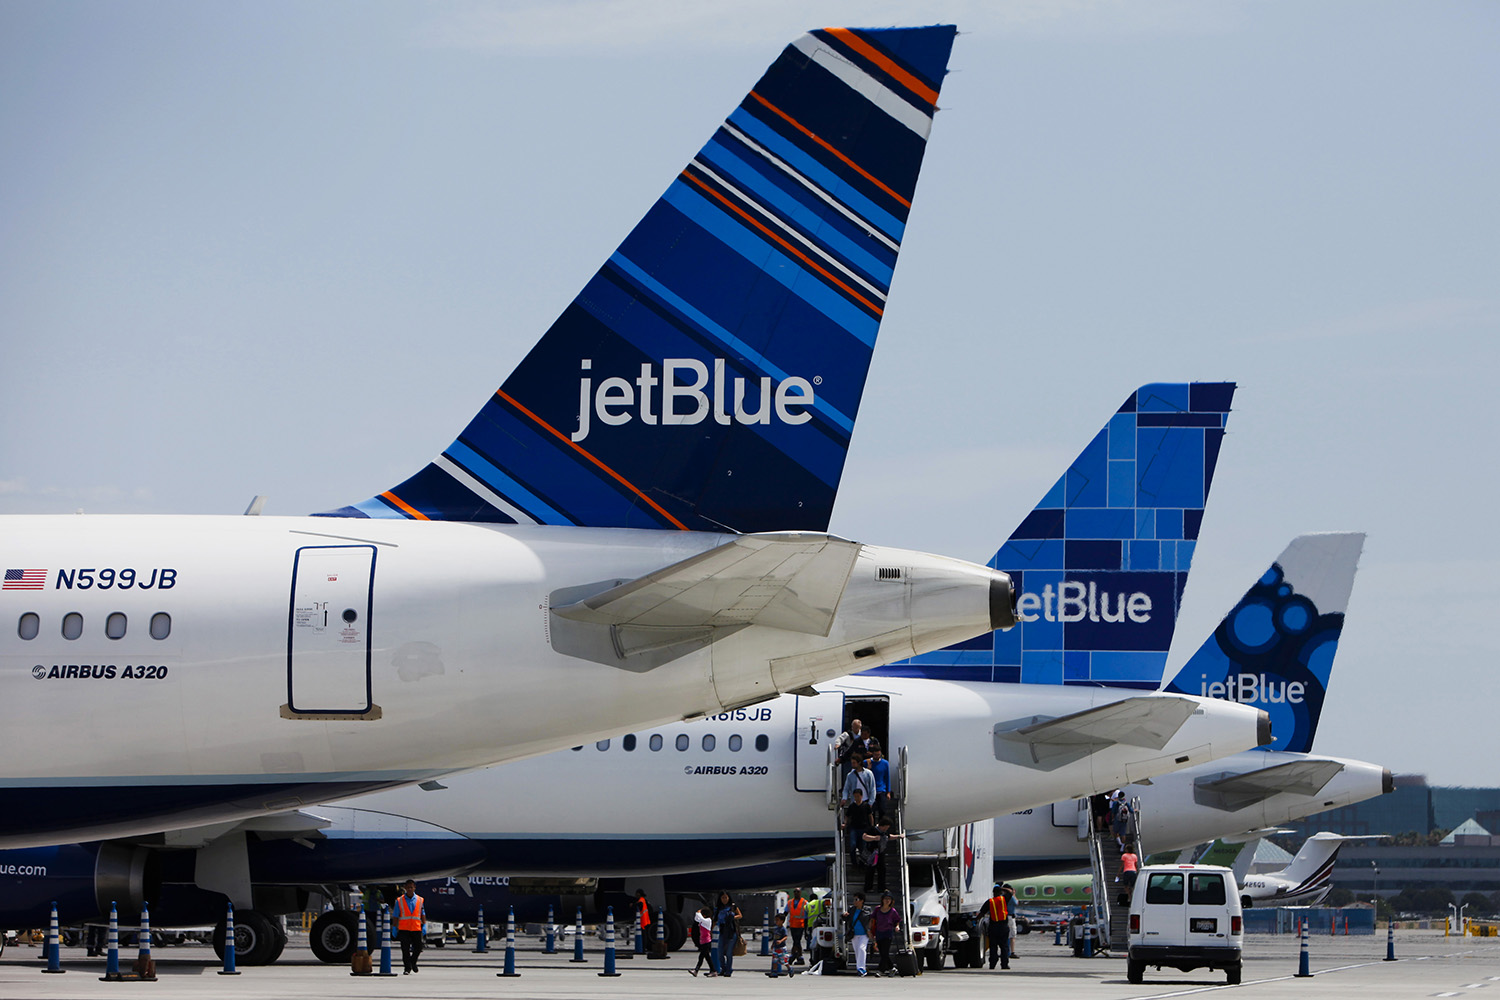 JetBlue Terminal at Long Beach Airport